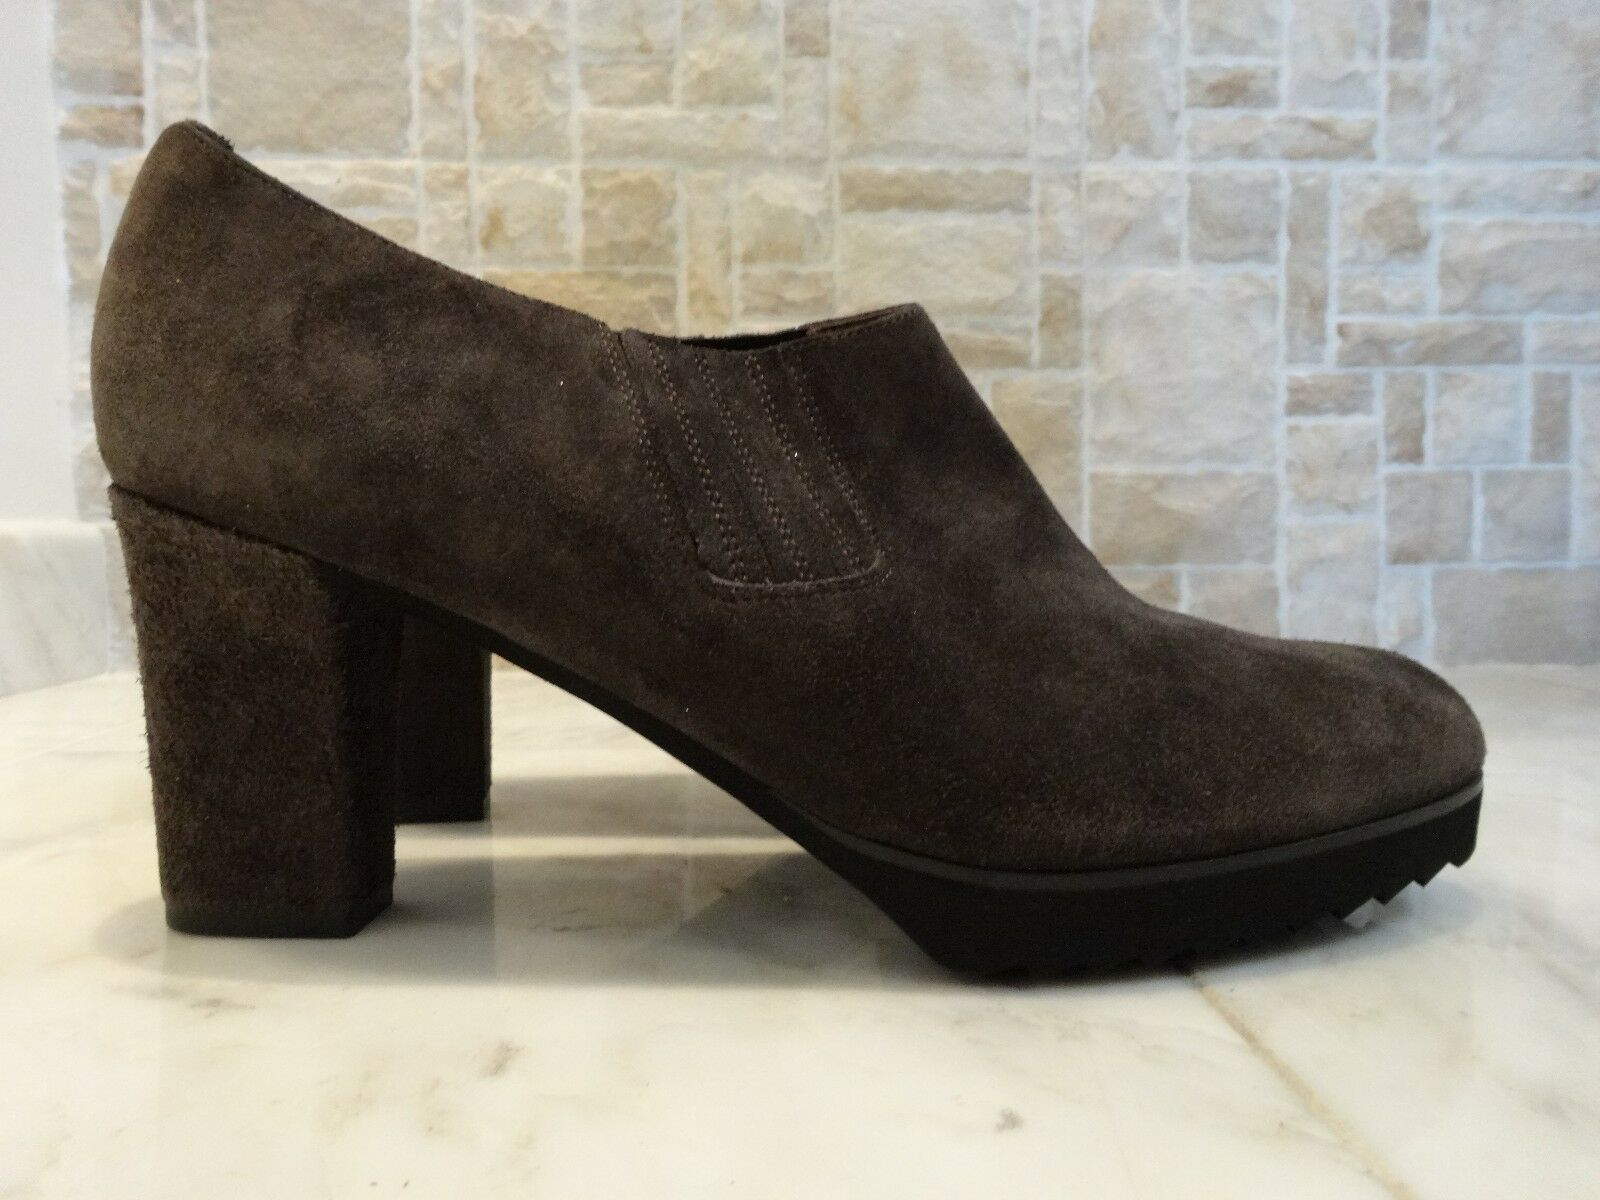 Anyi Lu 'Natalie' Suede Ankle Booties Gray US-10M EU-40M MSRP $425